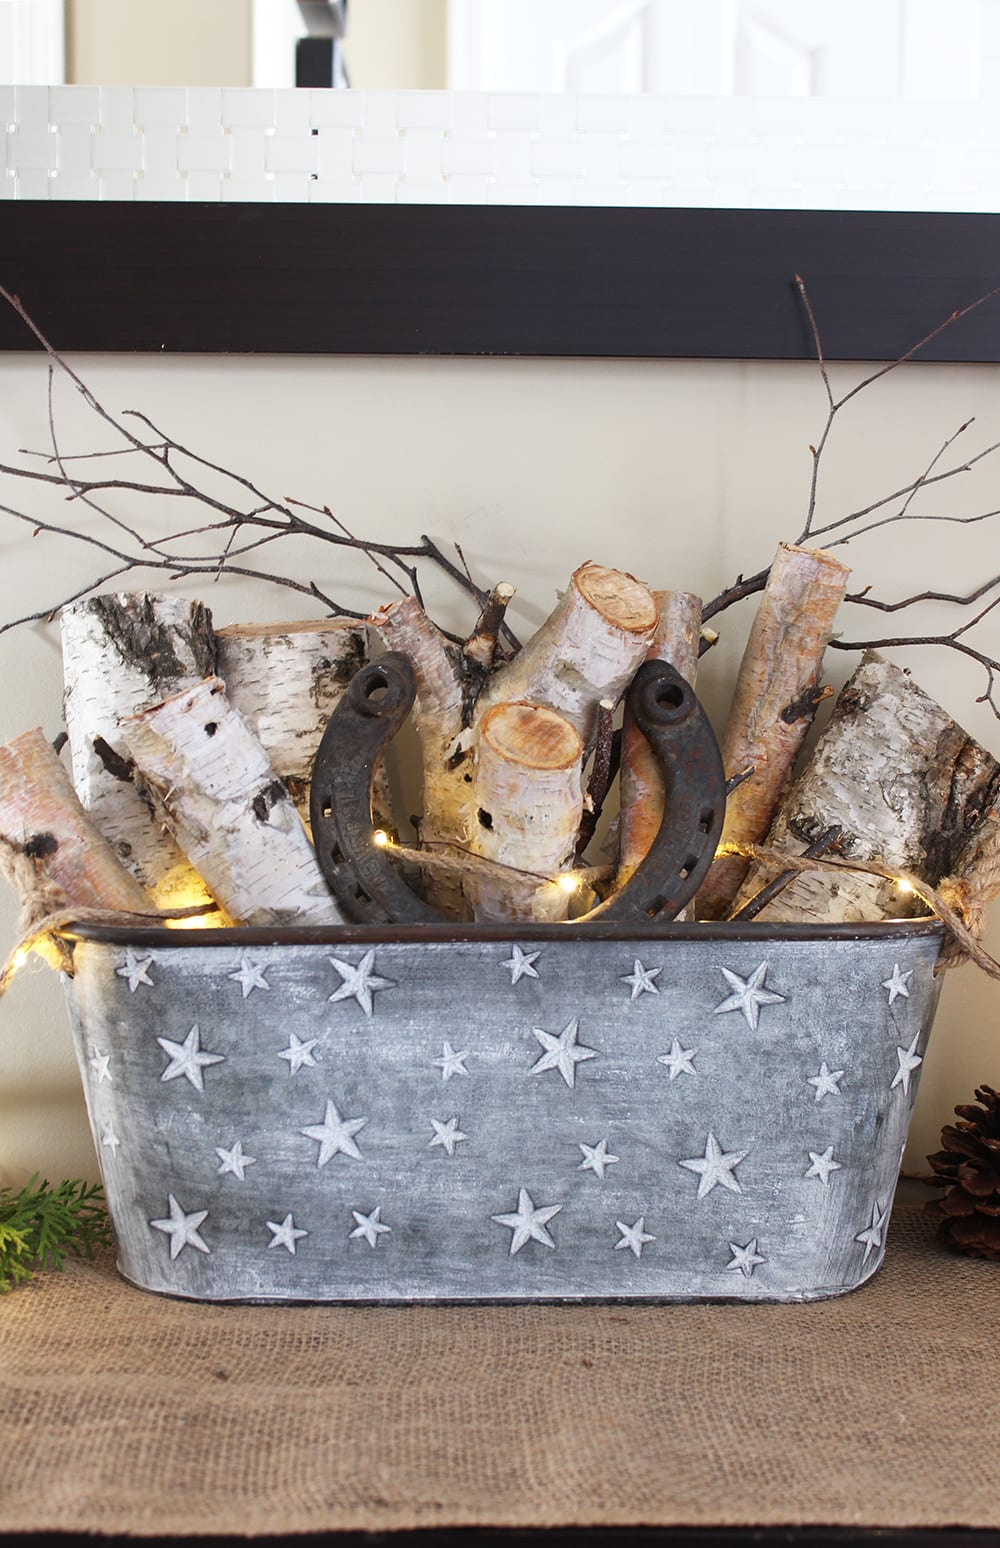 Nature inspired holiday decor featuring birch logs and twigs in a galvanized steel bucket, plus a horseshoe for good luck.